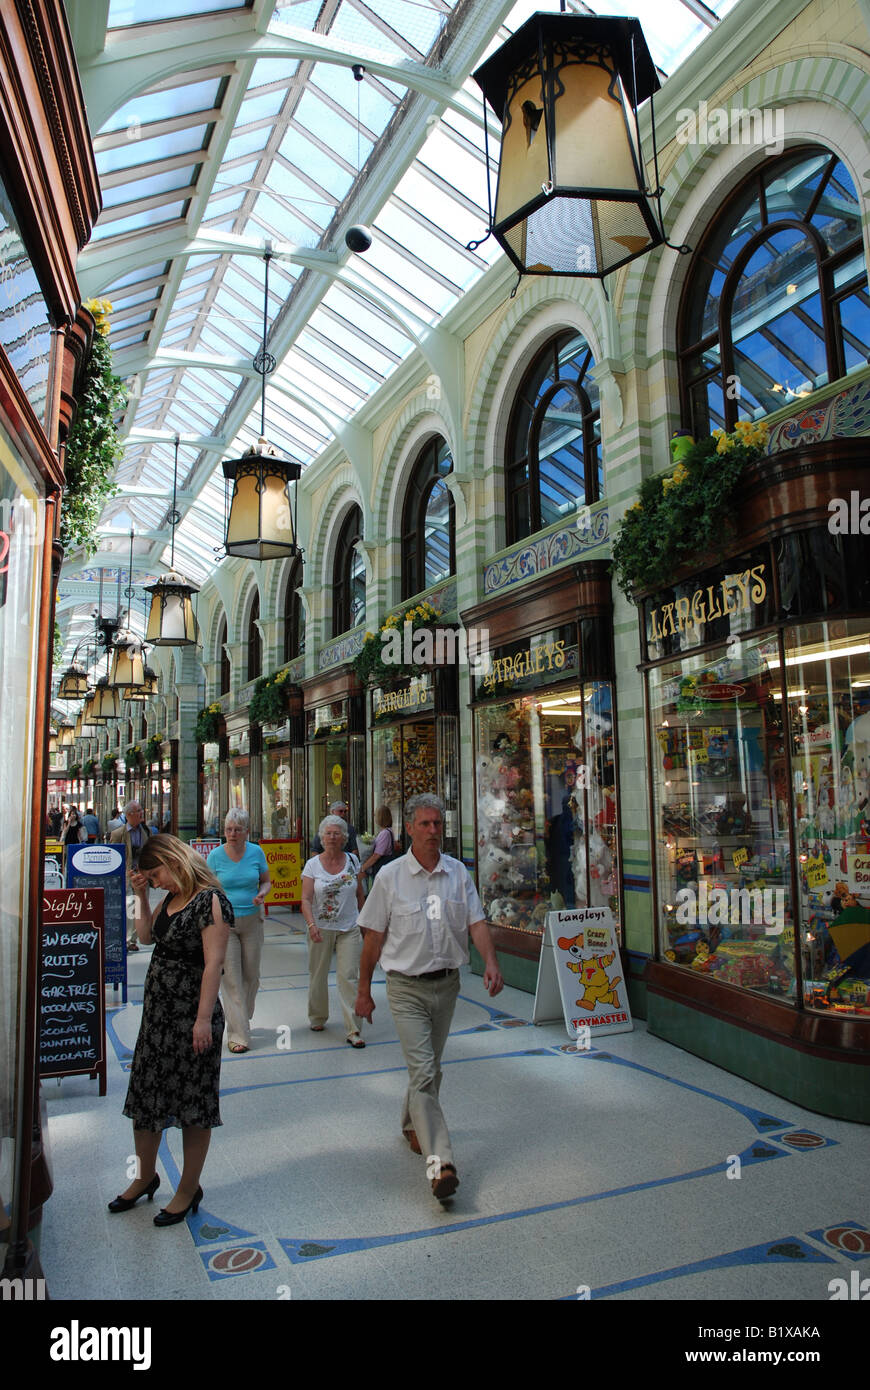 The Royal Arcade, Norwich, Norfolk - Stock Image